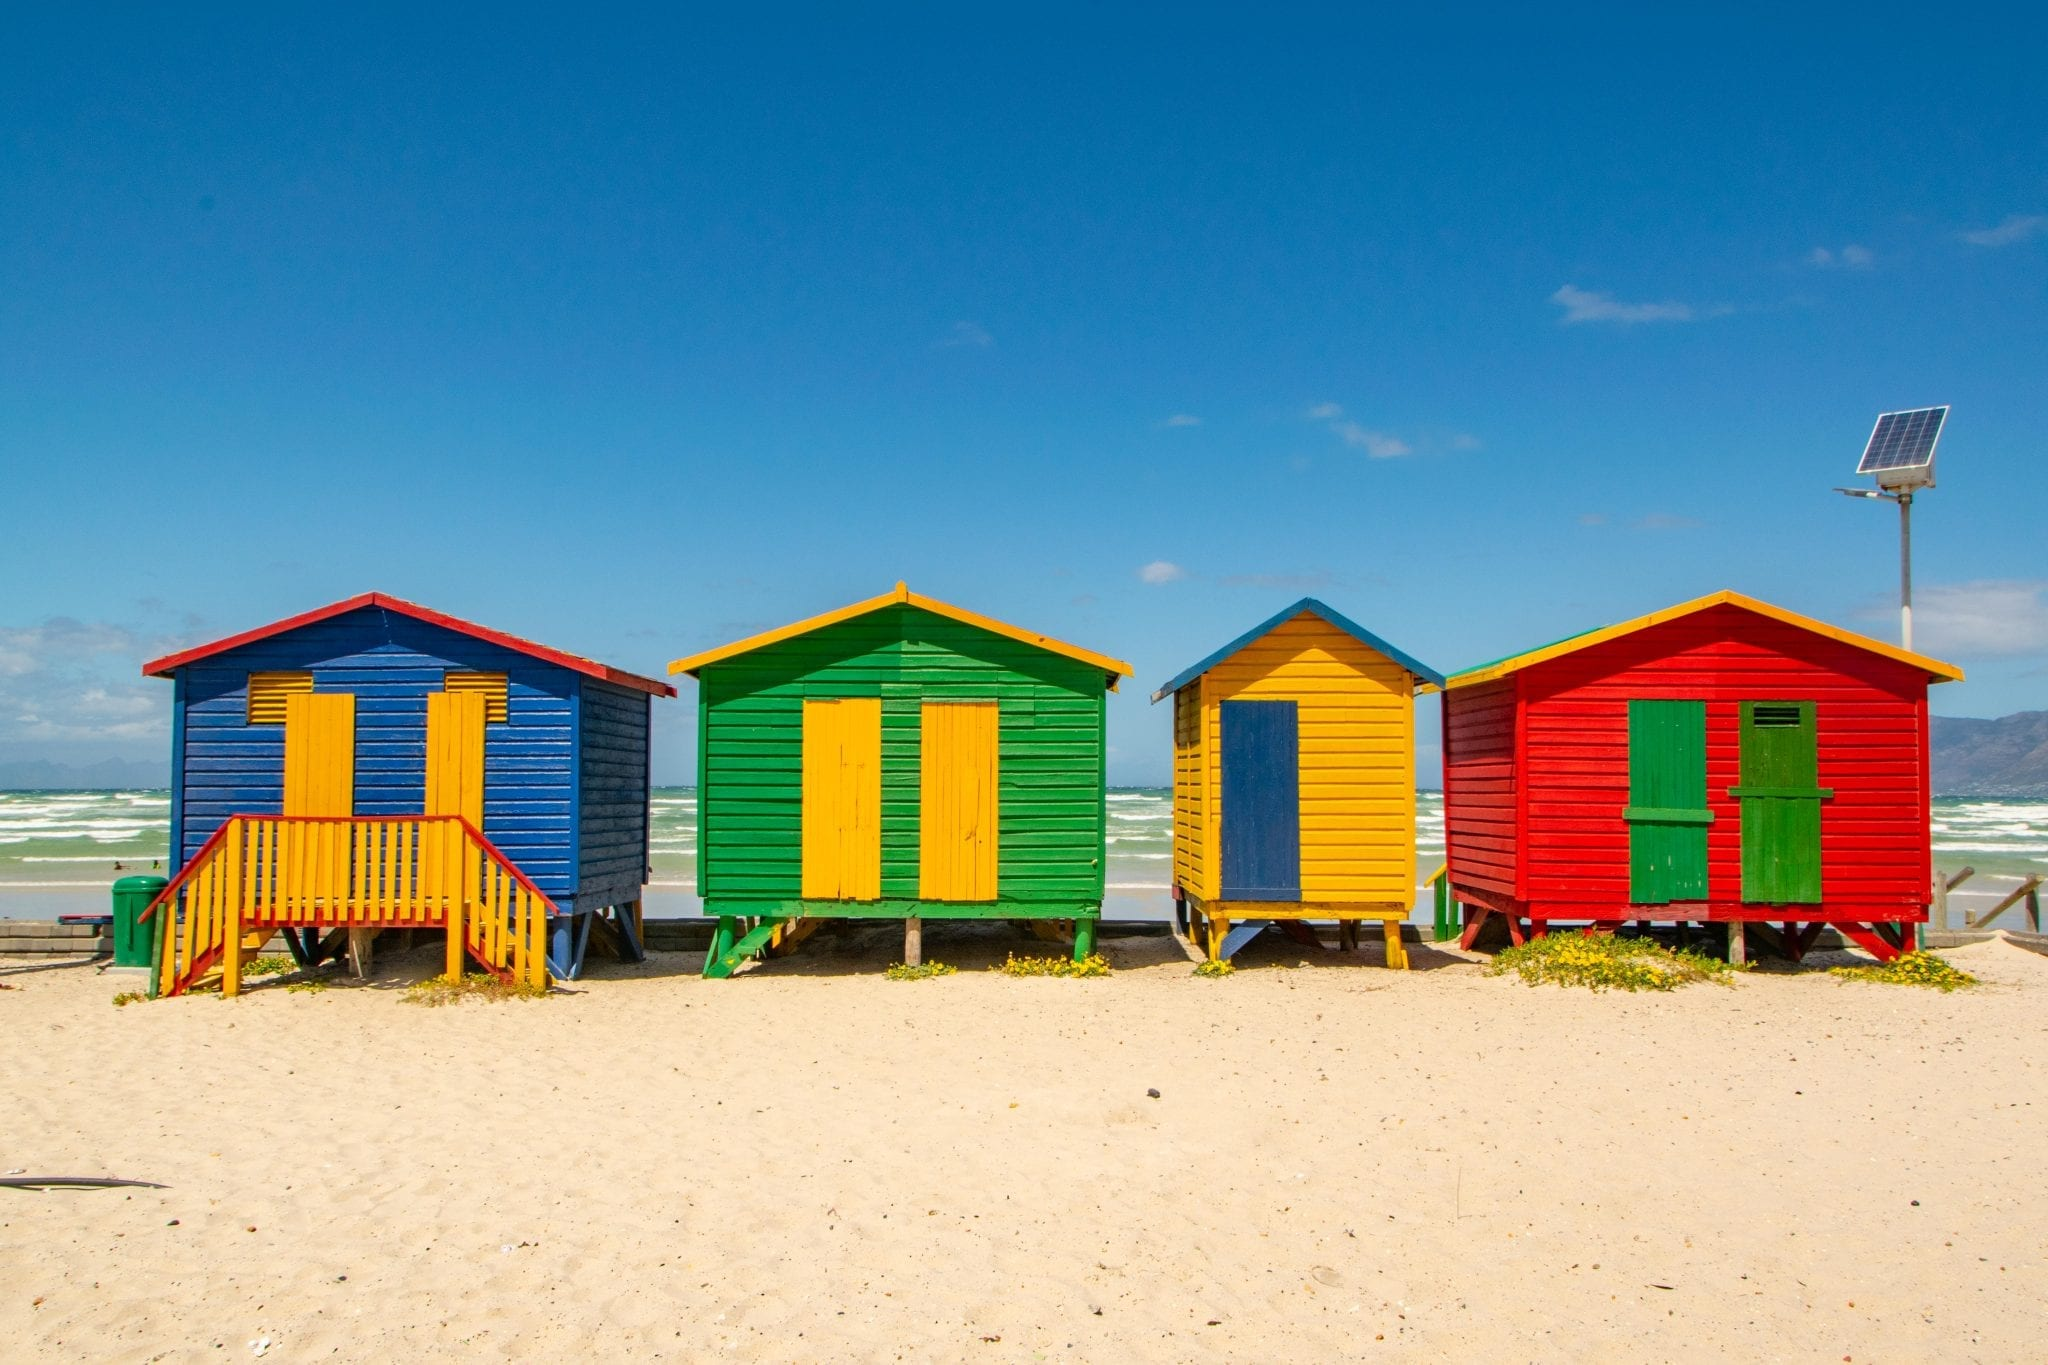 3 Days in Cape Town Itinerary: Muizenberg Beach